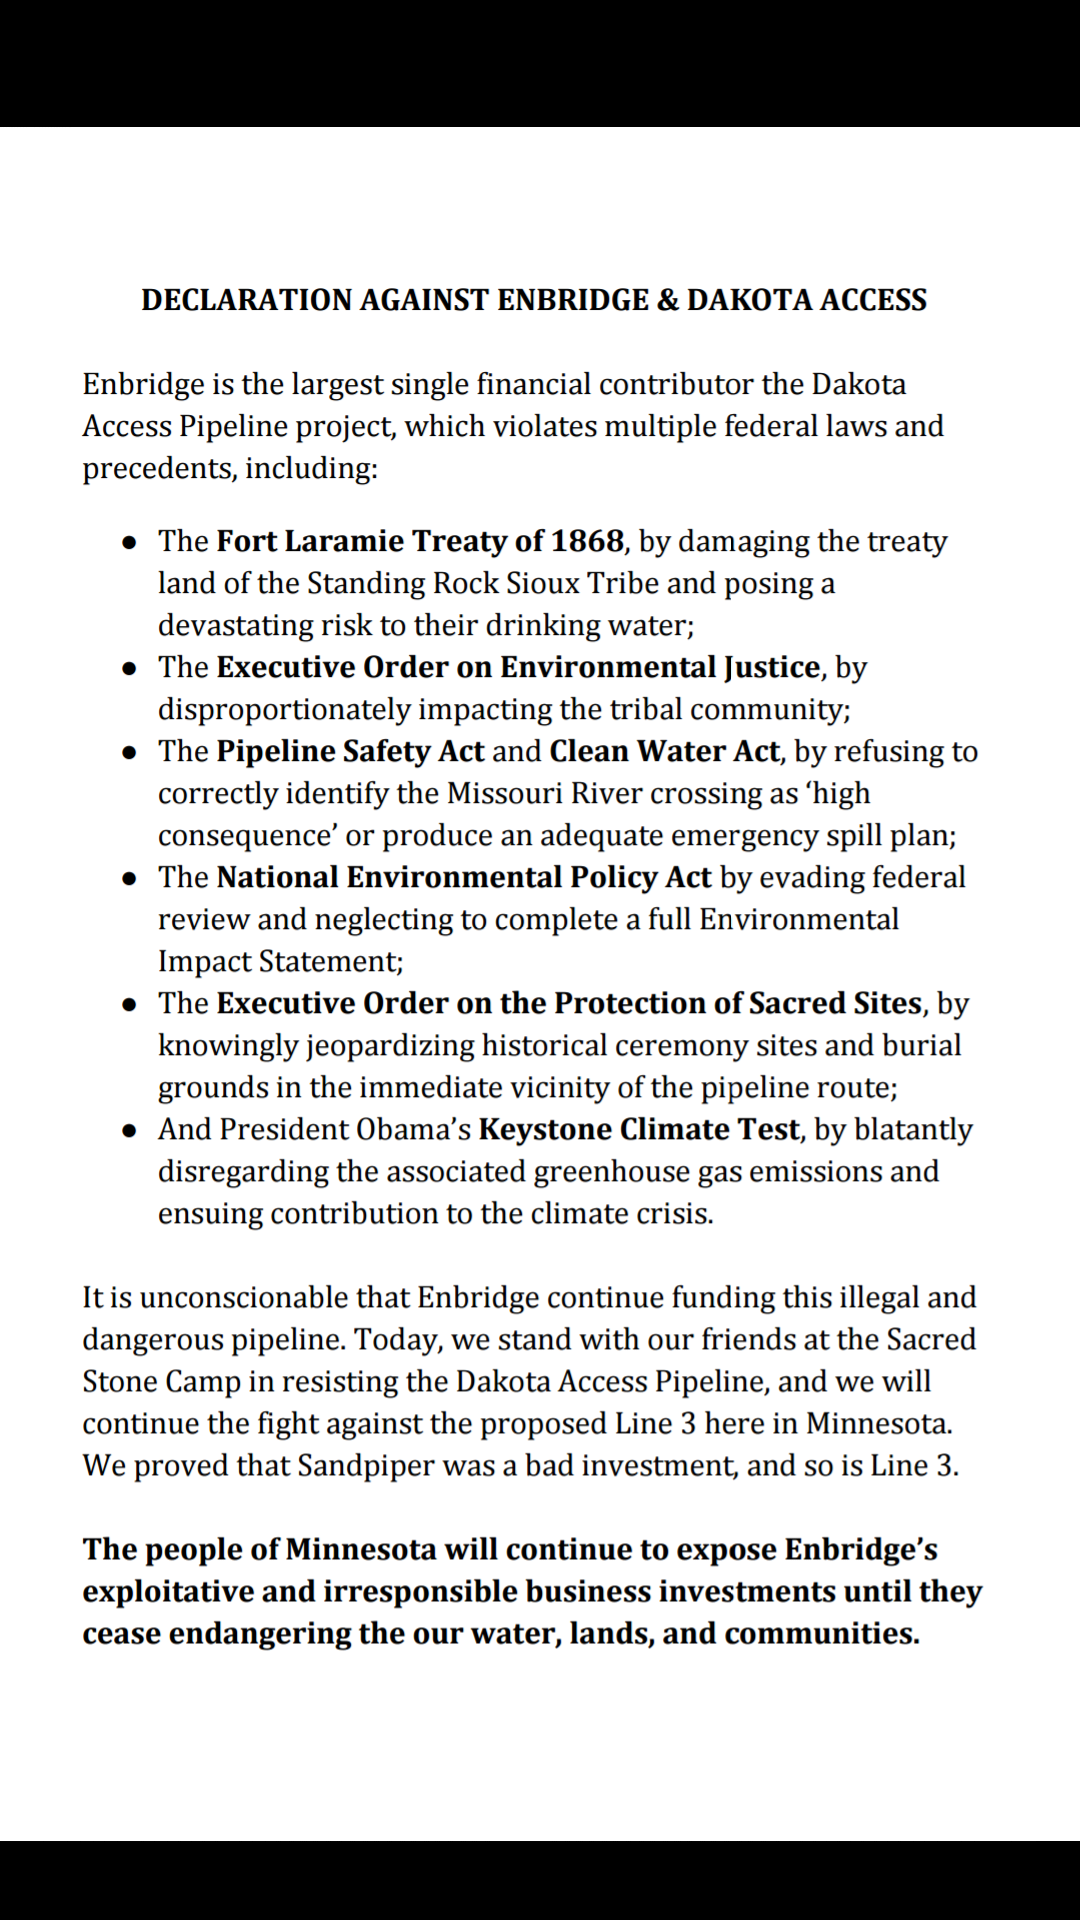 Declaration against energy companies Enbridge and Dakota Access, handed out today to Enbridge employees